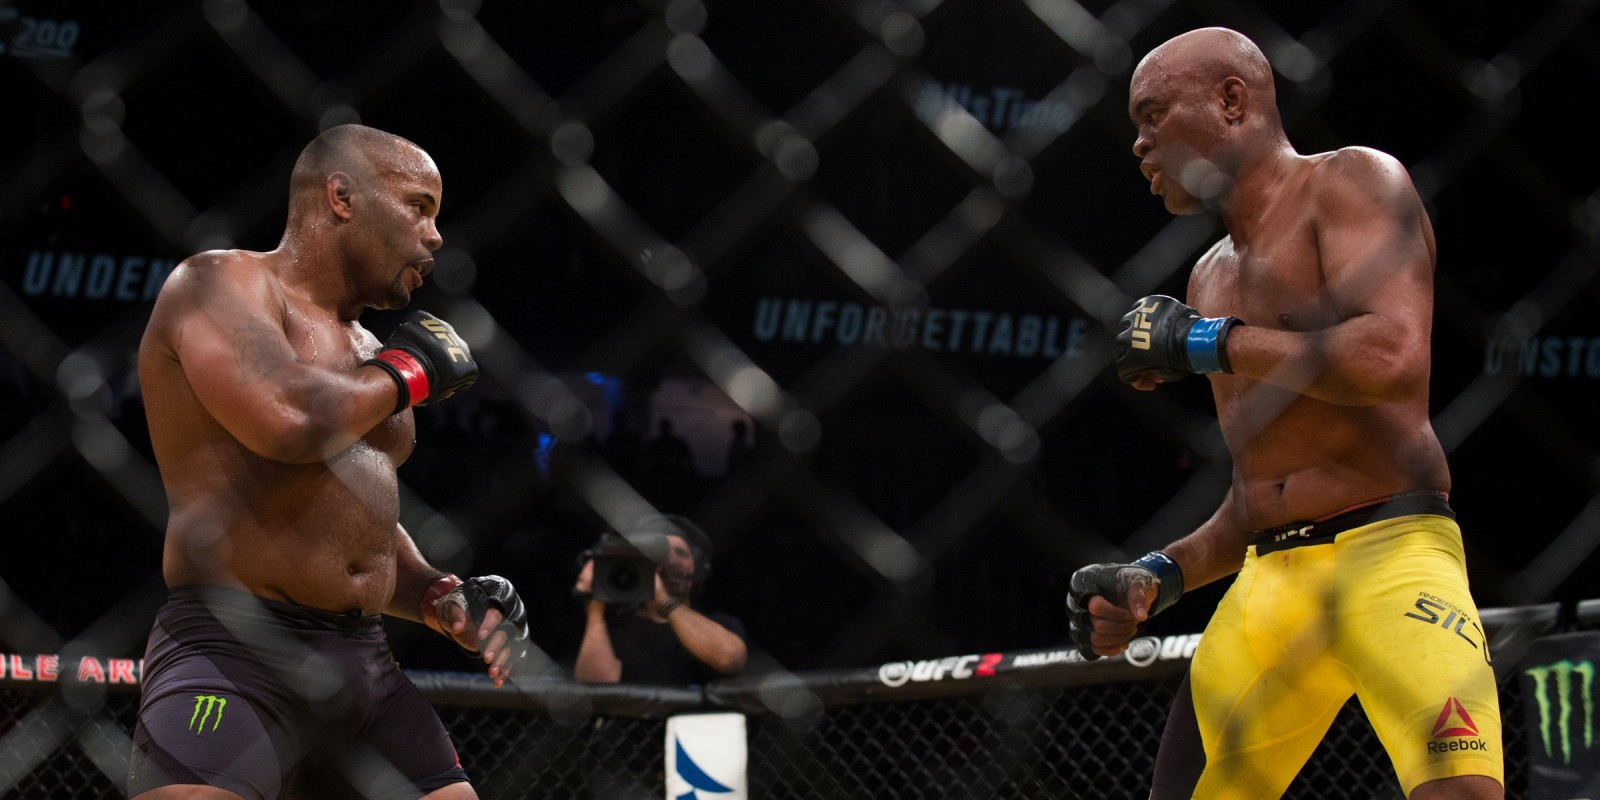 Daniel Cormier throws a kick against Anderson Silva during UFC 200 at T-Mobile Arena on July 9, 2016 in Las Vegas, Nevada.